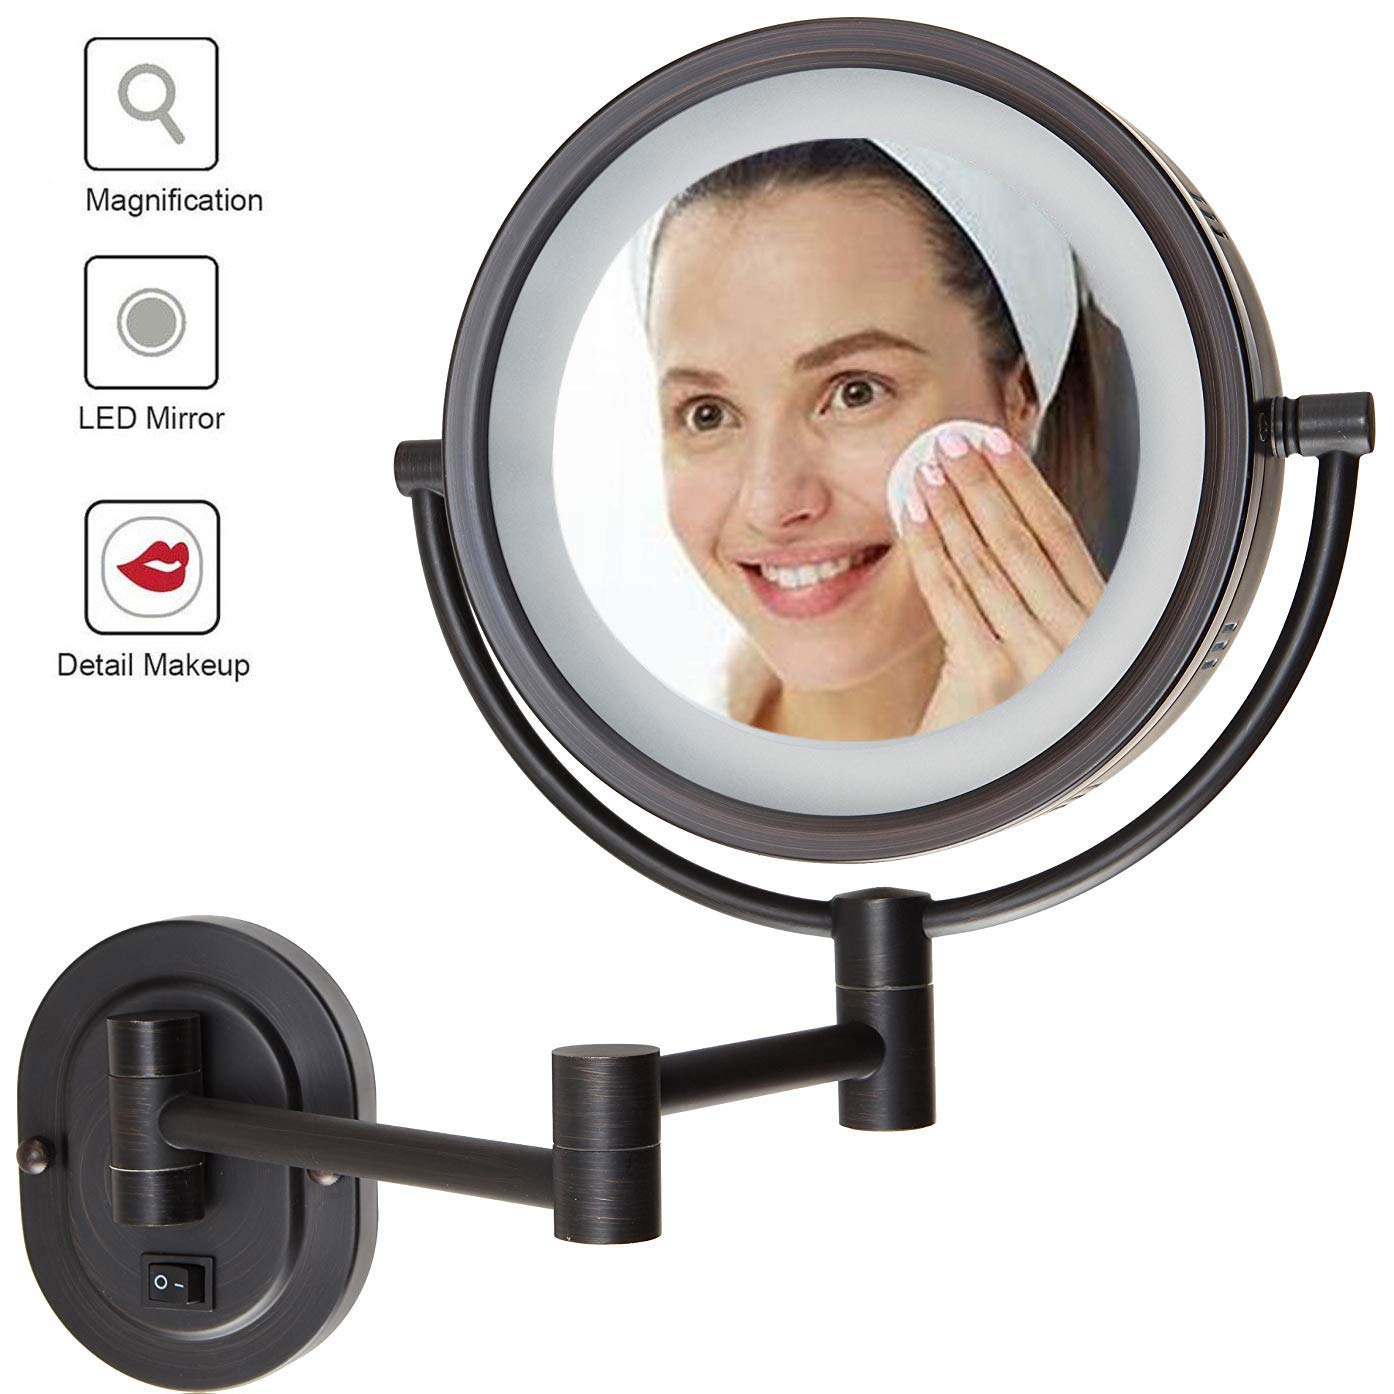 Wall Mount Makeup Mirror with Lights, Wall Mount Makeup Mirror Black, Bathroom Two Side 360 Swivel Cosmetic Face Mirror Extendable Vanity Mirrors Plug Powered 3x/5x,5X by LFSTY